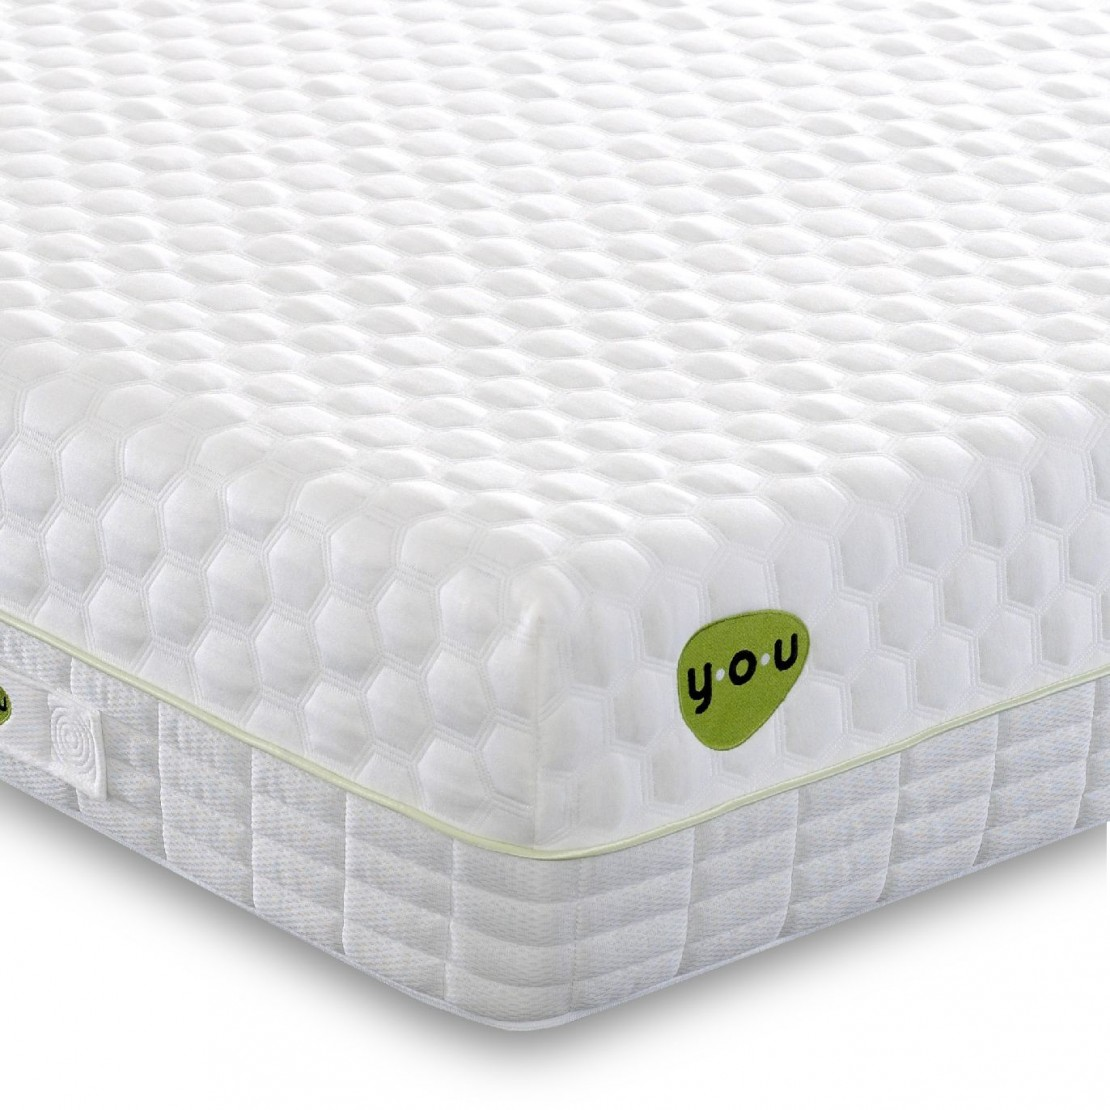 /_images/product-photos/breasley-you-perfect-number-8-mattress-a.jpg